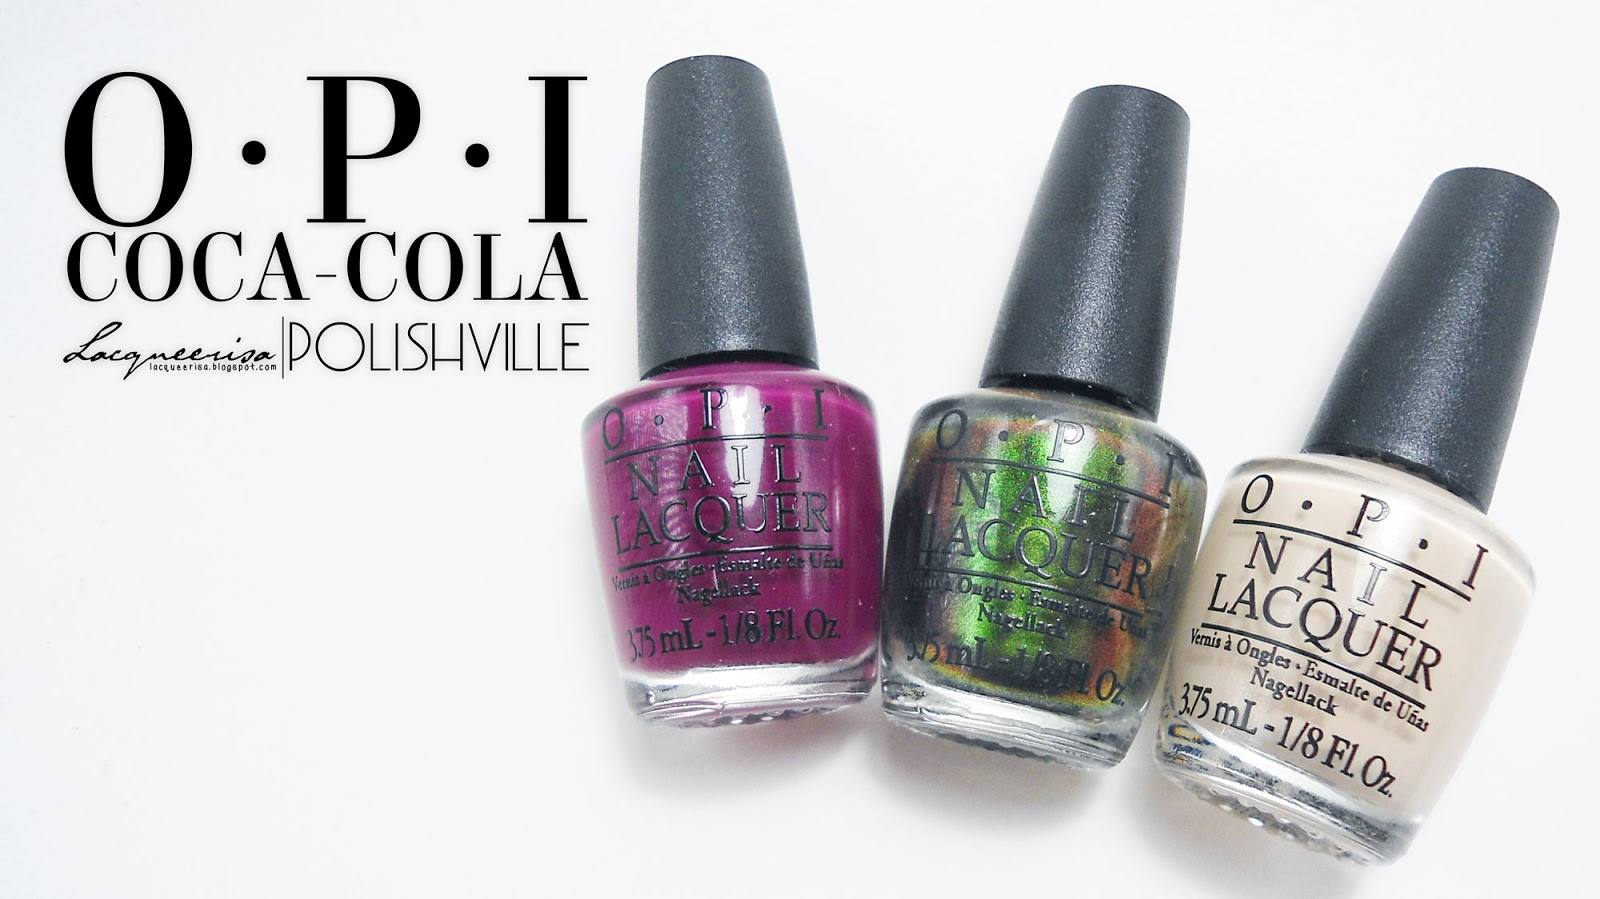 LacqueerisaXPolishville OPI Coca-Cola Collection